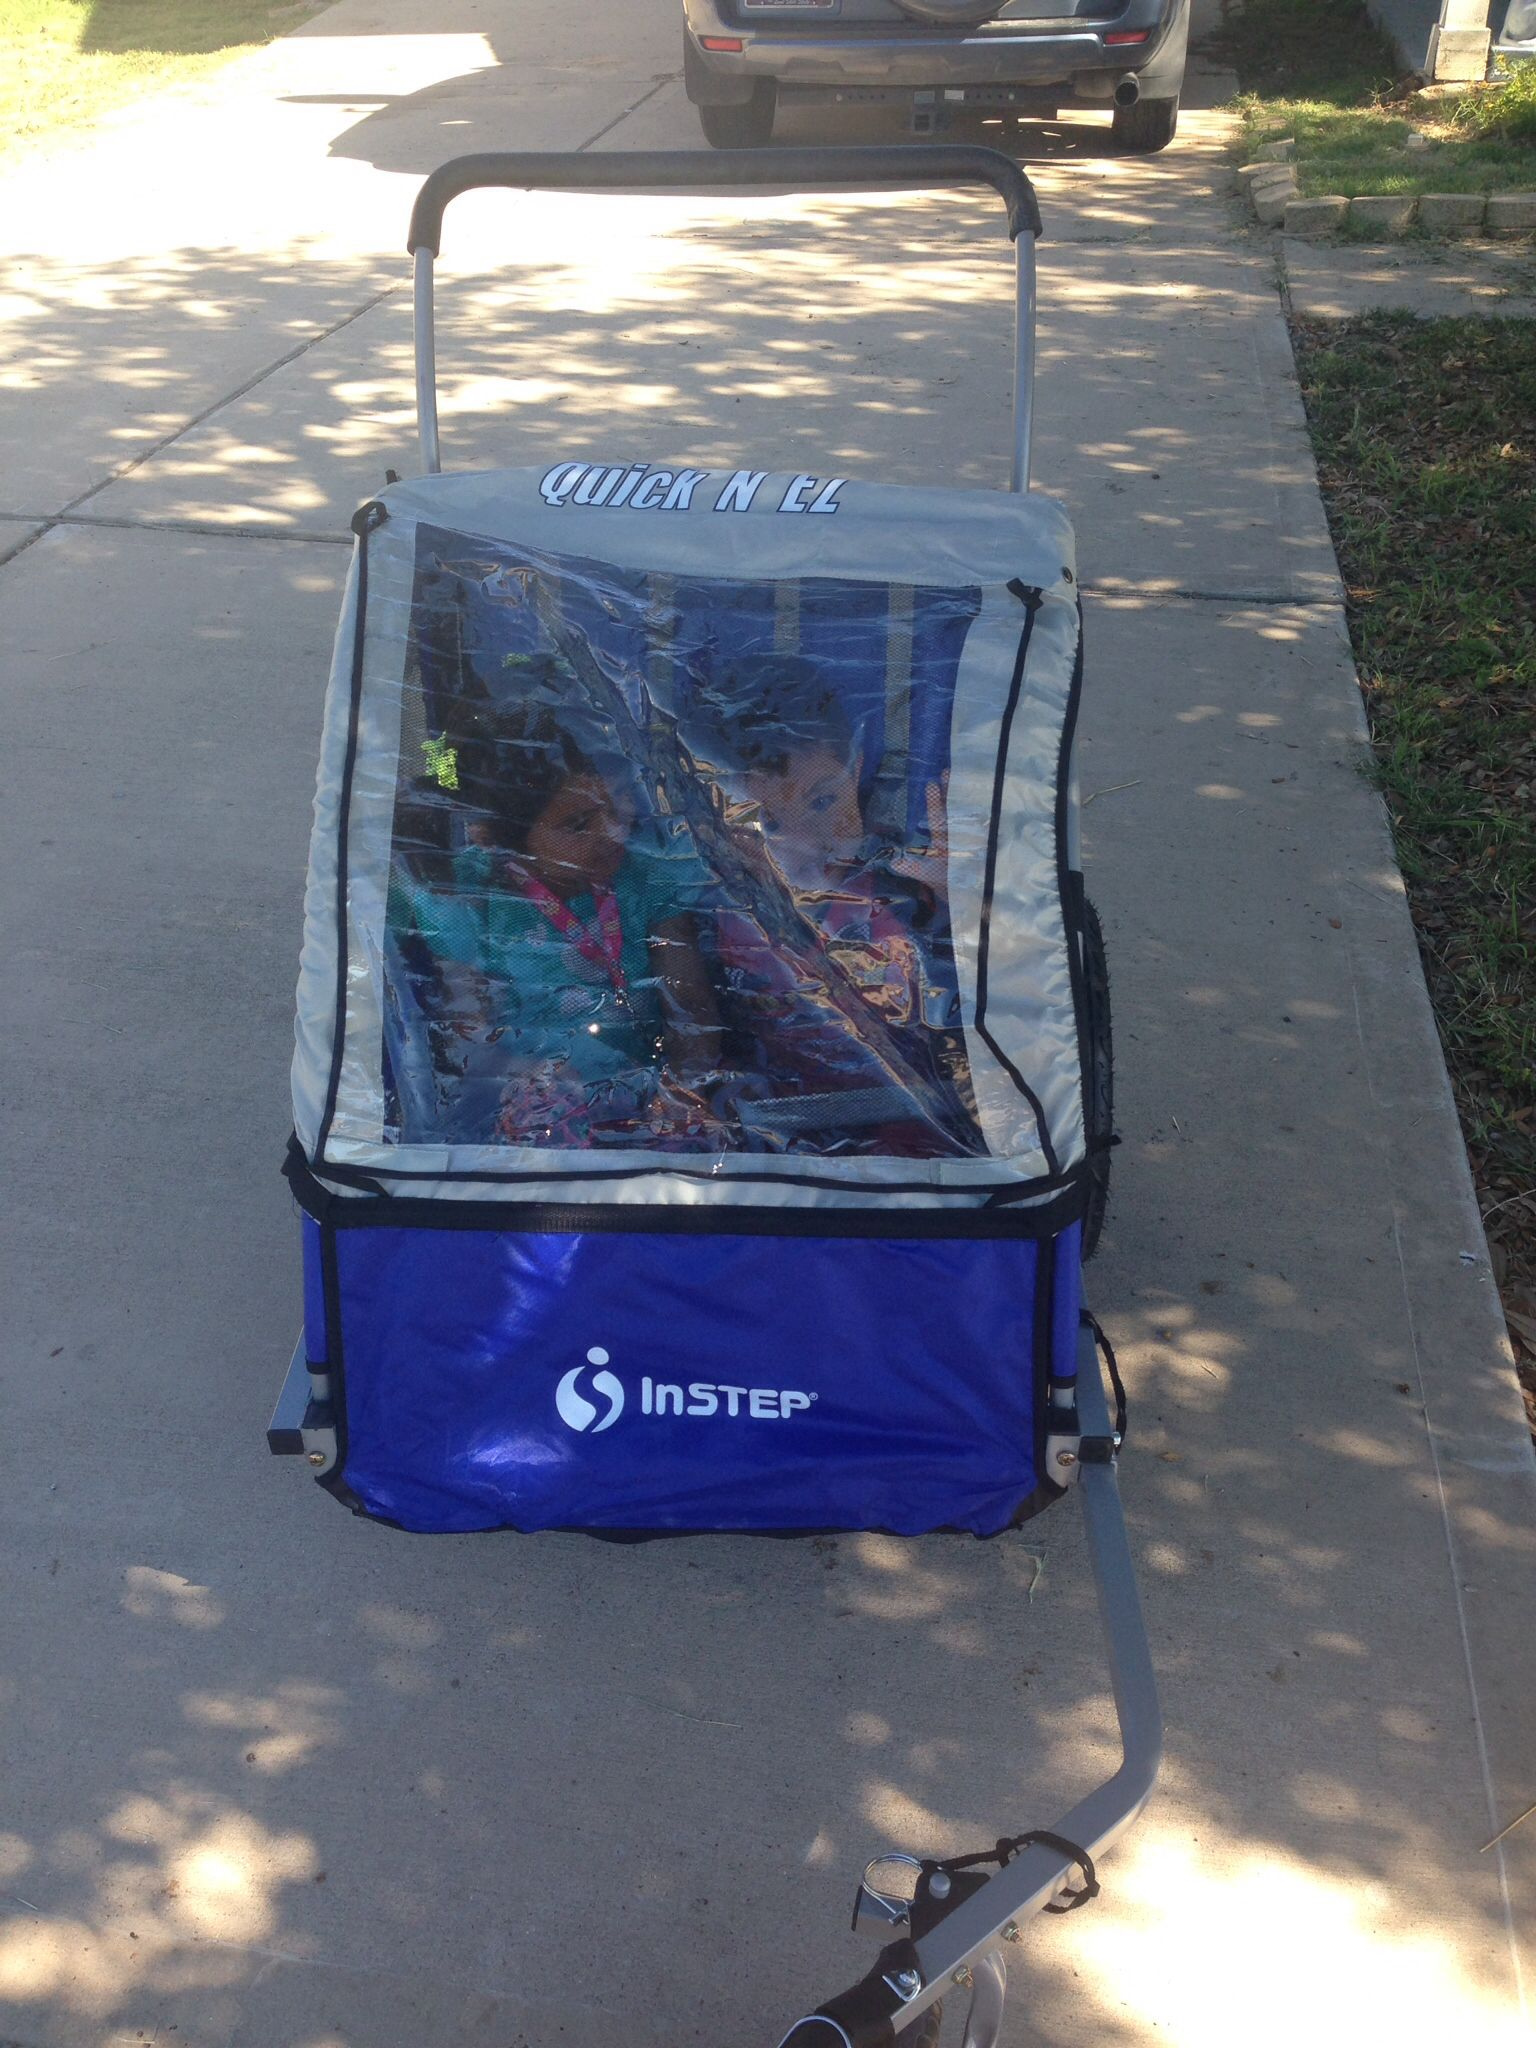 In step stroller/trailer I'm using it as a stroller for